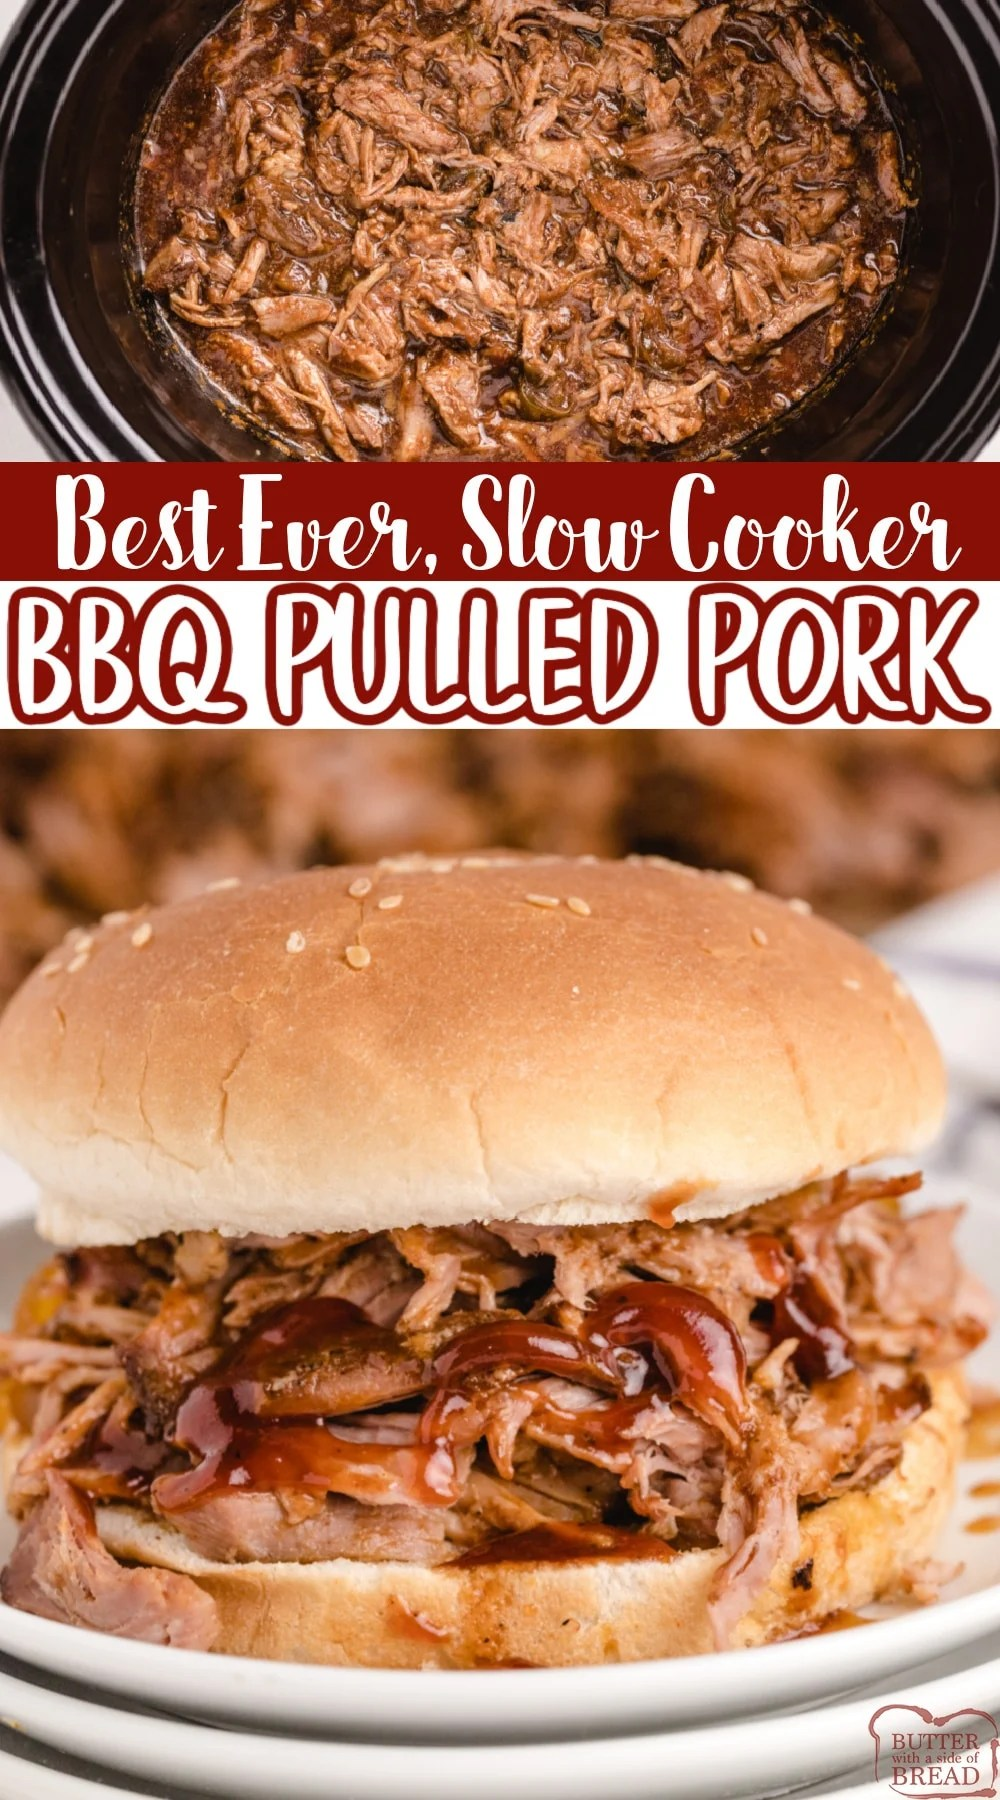 Best EVER Slow Cooker BBQ Pulled Pork! It's moist, tender and packed with flavor! This simple crockpot pulled pork recipe is perfect for making sandwiches or just serving over rice.